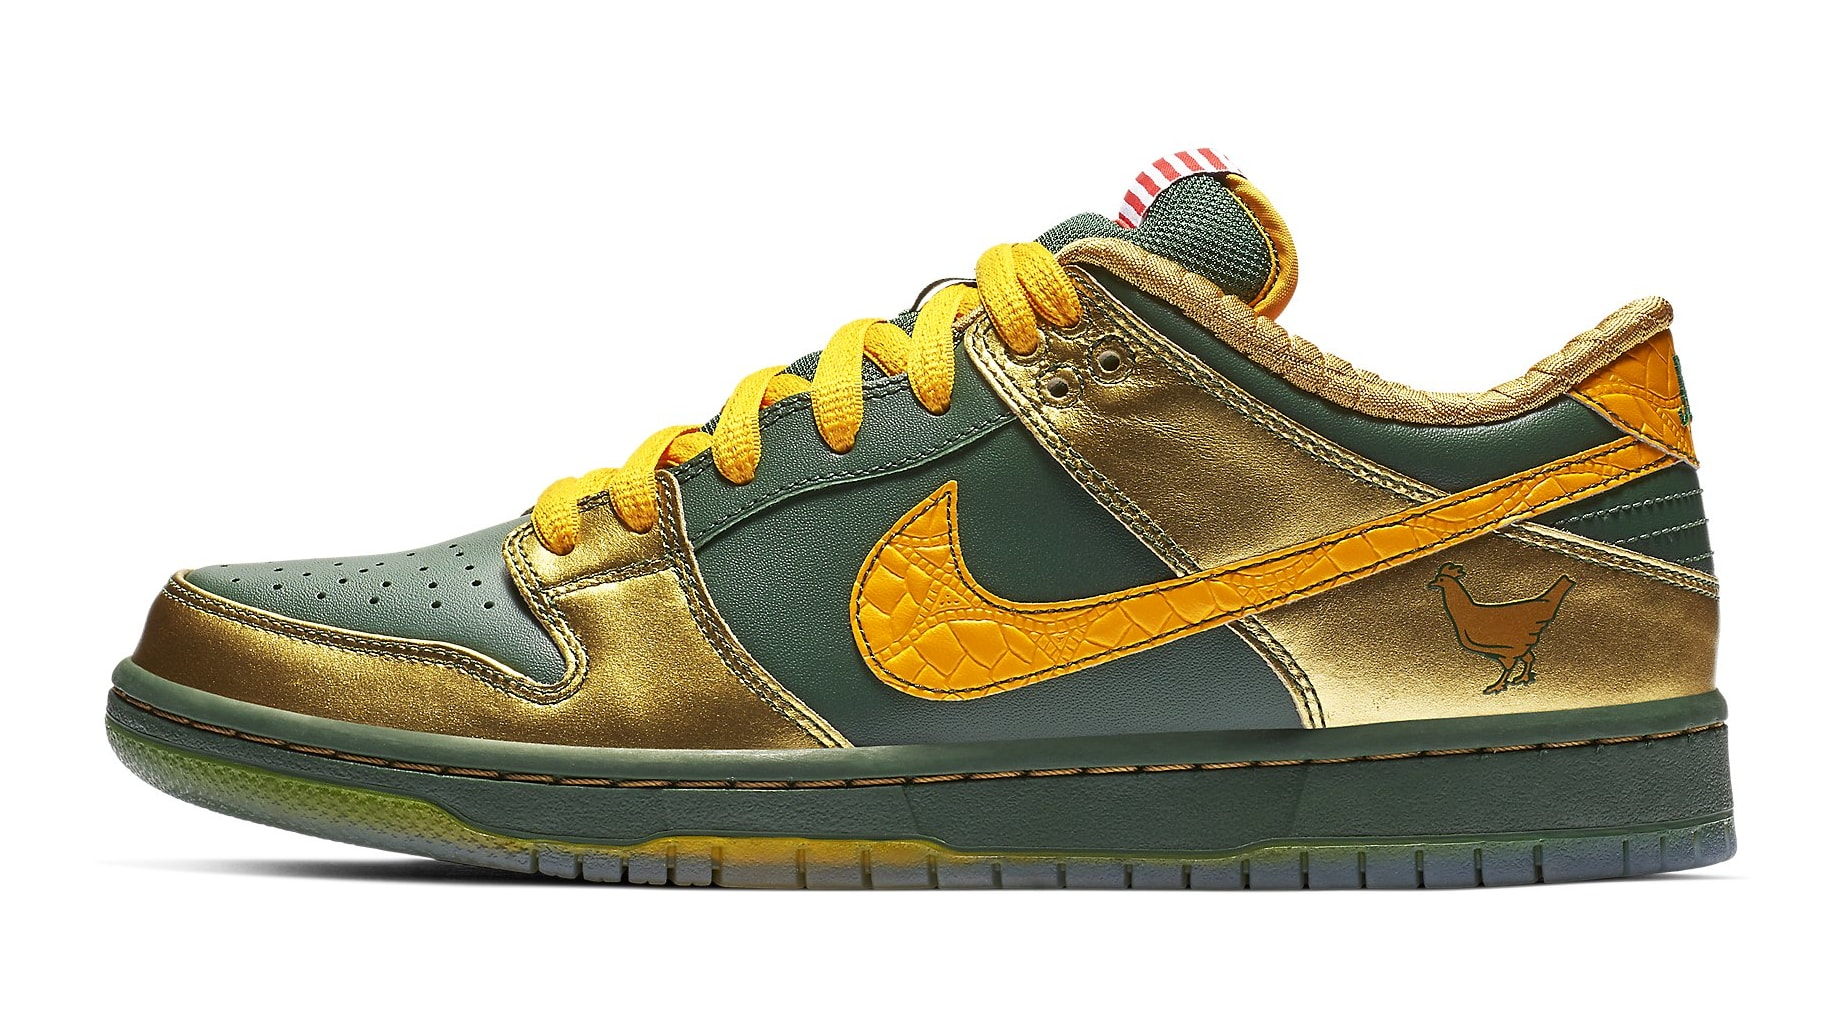 nike-doernbecher-2018-sb-dunk-low-bv8740-377-lateral